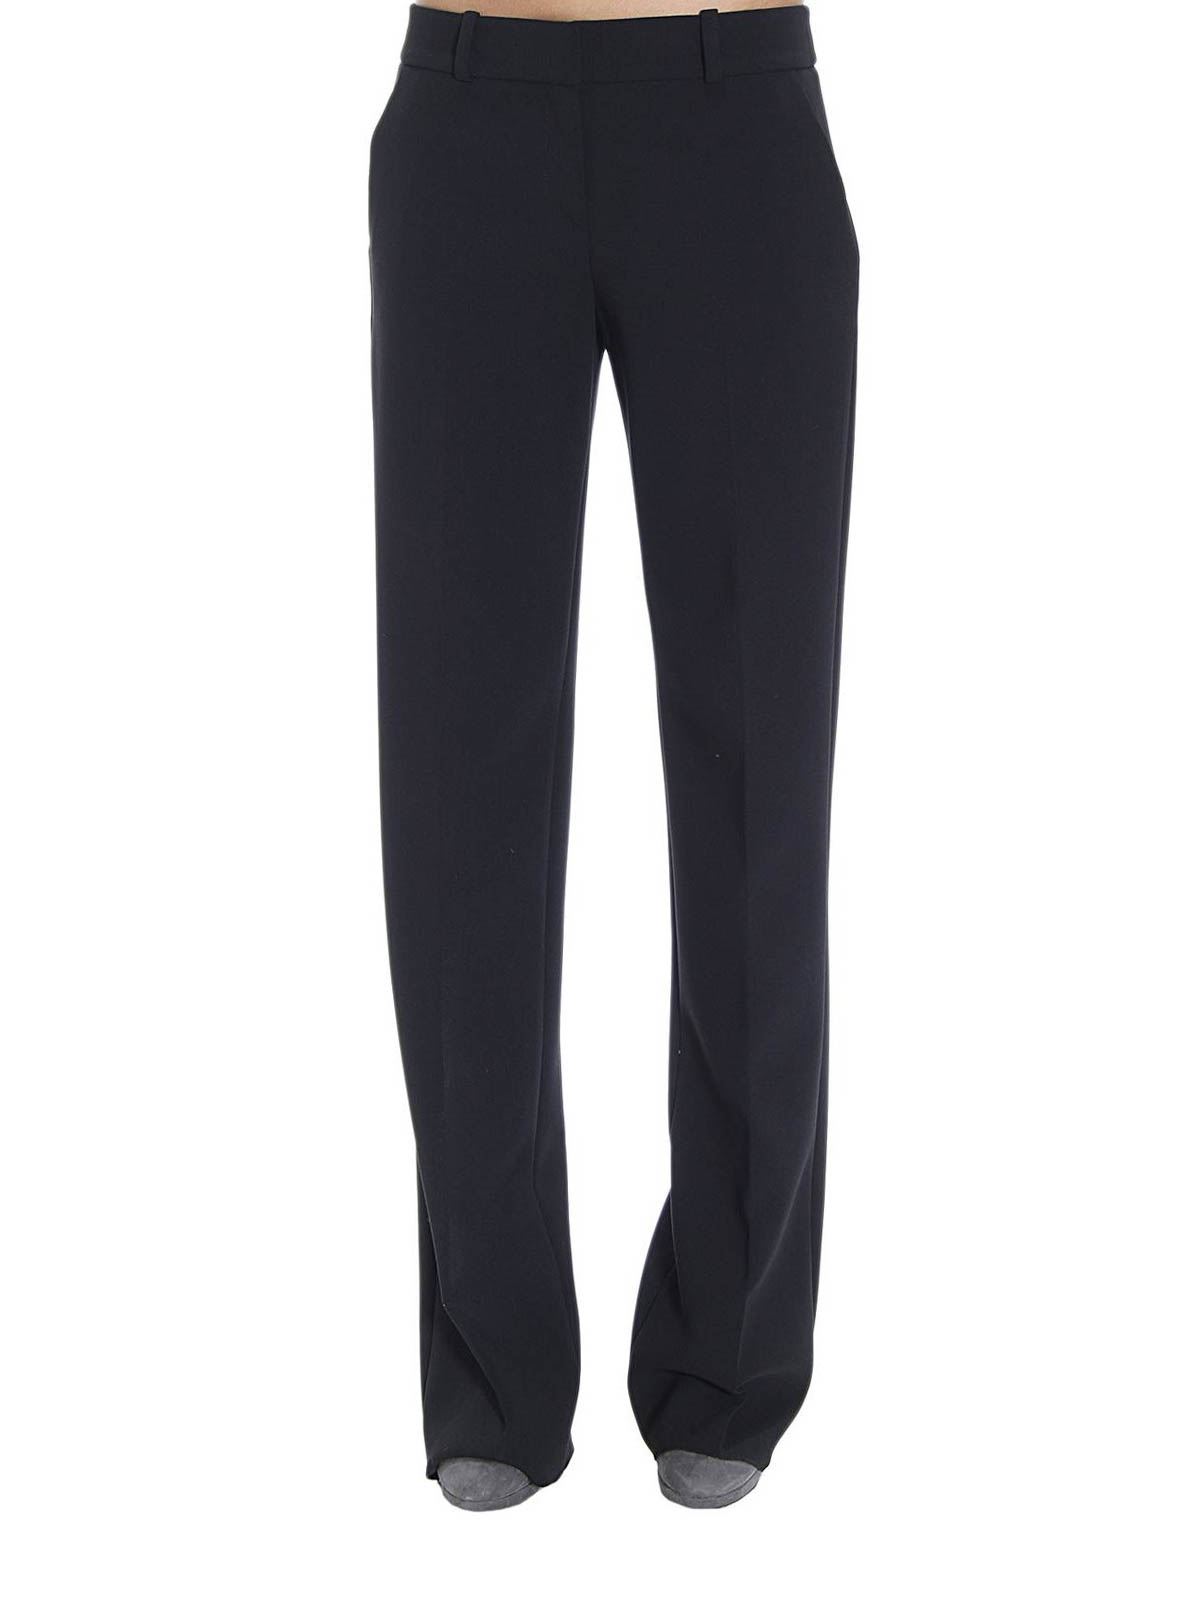 Buy Men's Trousers Online at Snapdeal